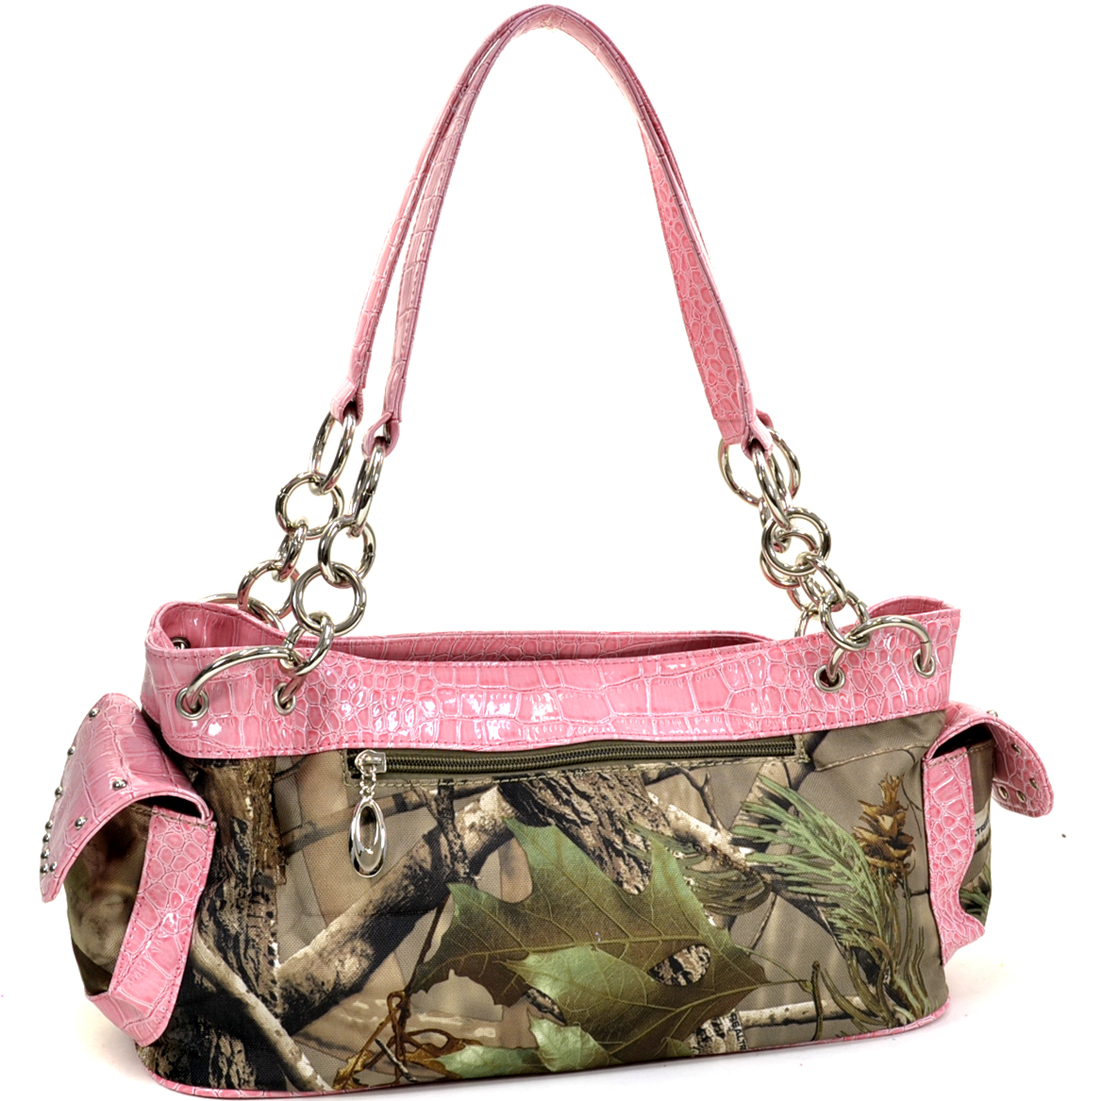 Realtree® APG Camo Chain Handle Shoulder Bag